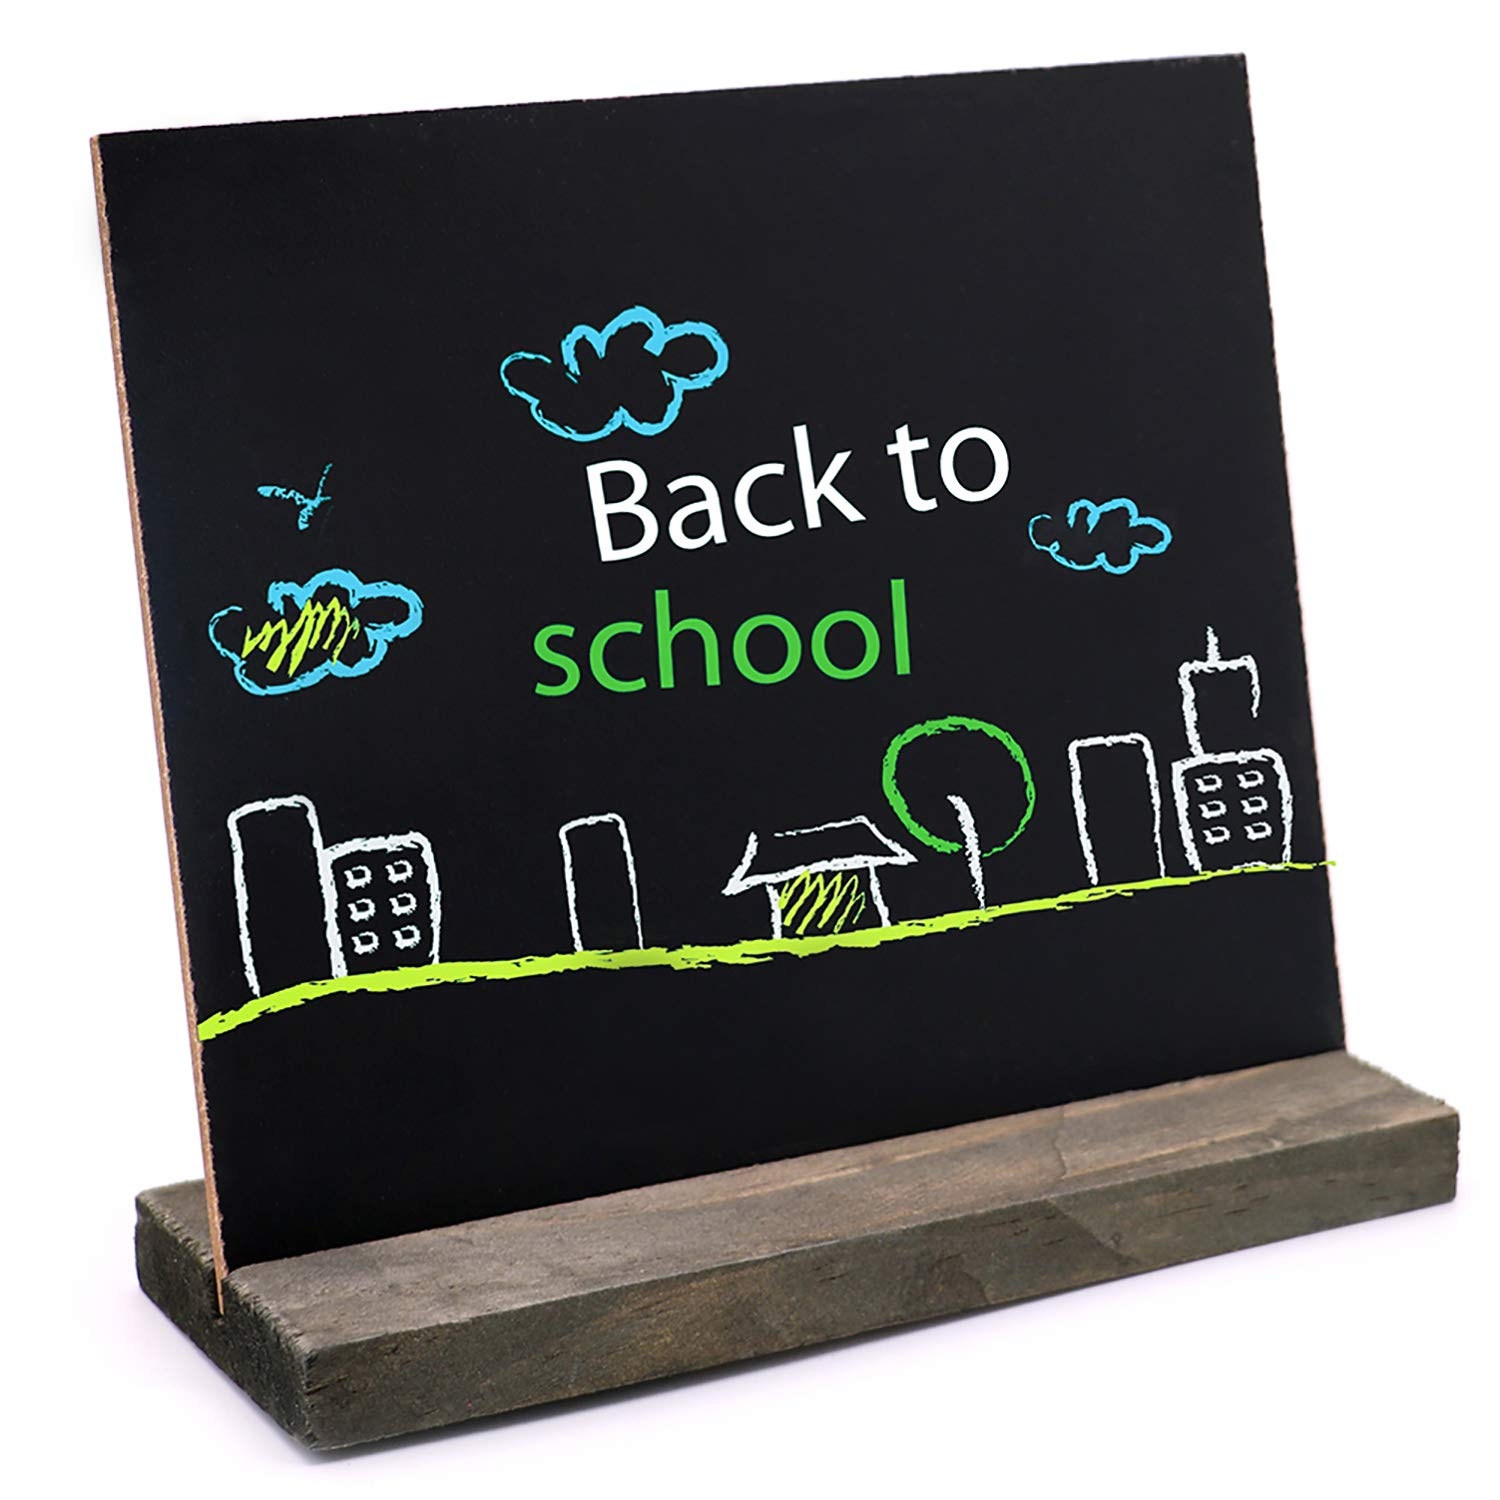 Xgood 10 Sets Mini Chalkboard Easel Signs Wooden Small Blackboard Message Boards with Vintage Style and 2 Pieces Non-Woven Eraser for ...